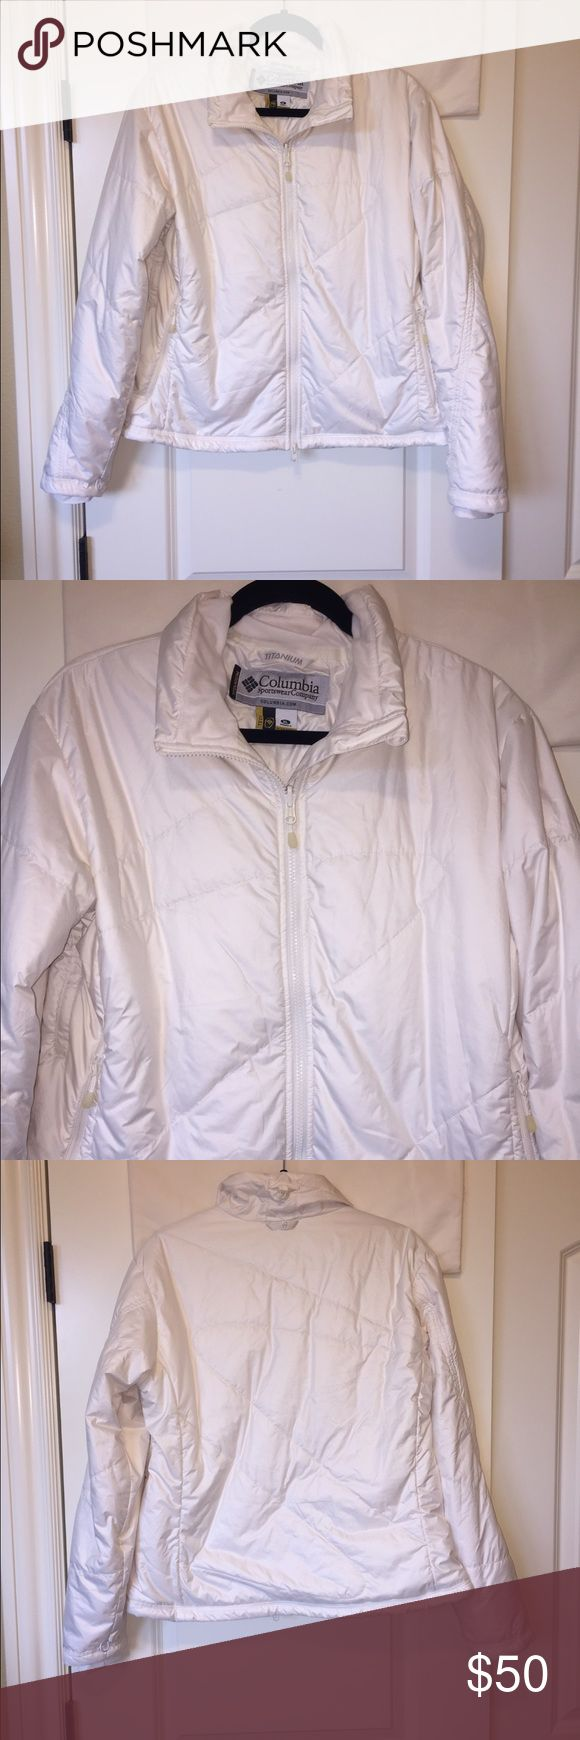 """Columbia Sportswear Titanium Interchange Jacket Women's Columbia Sportswear Titanium Interchange Jacket. Like new. Winter white color. Very warm without the bulkiness. Zippered pockets. cuffs inside sleeves to prevent drafts. Adjustable cinch at hem. 100% polyester. 26"""" length from shoulder. Size XL. Columbia Jackets & Coats Puffers"""